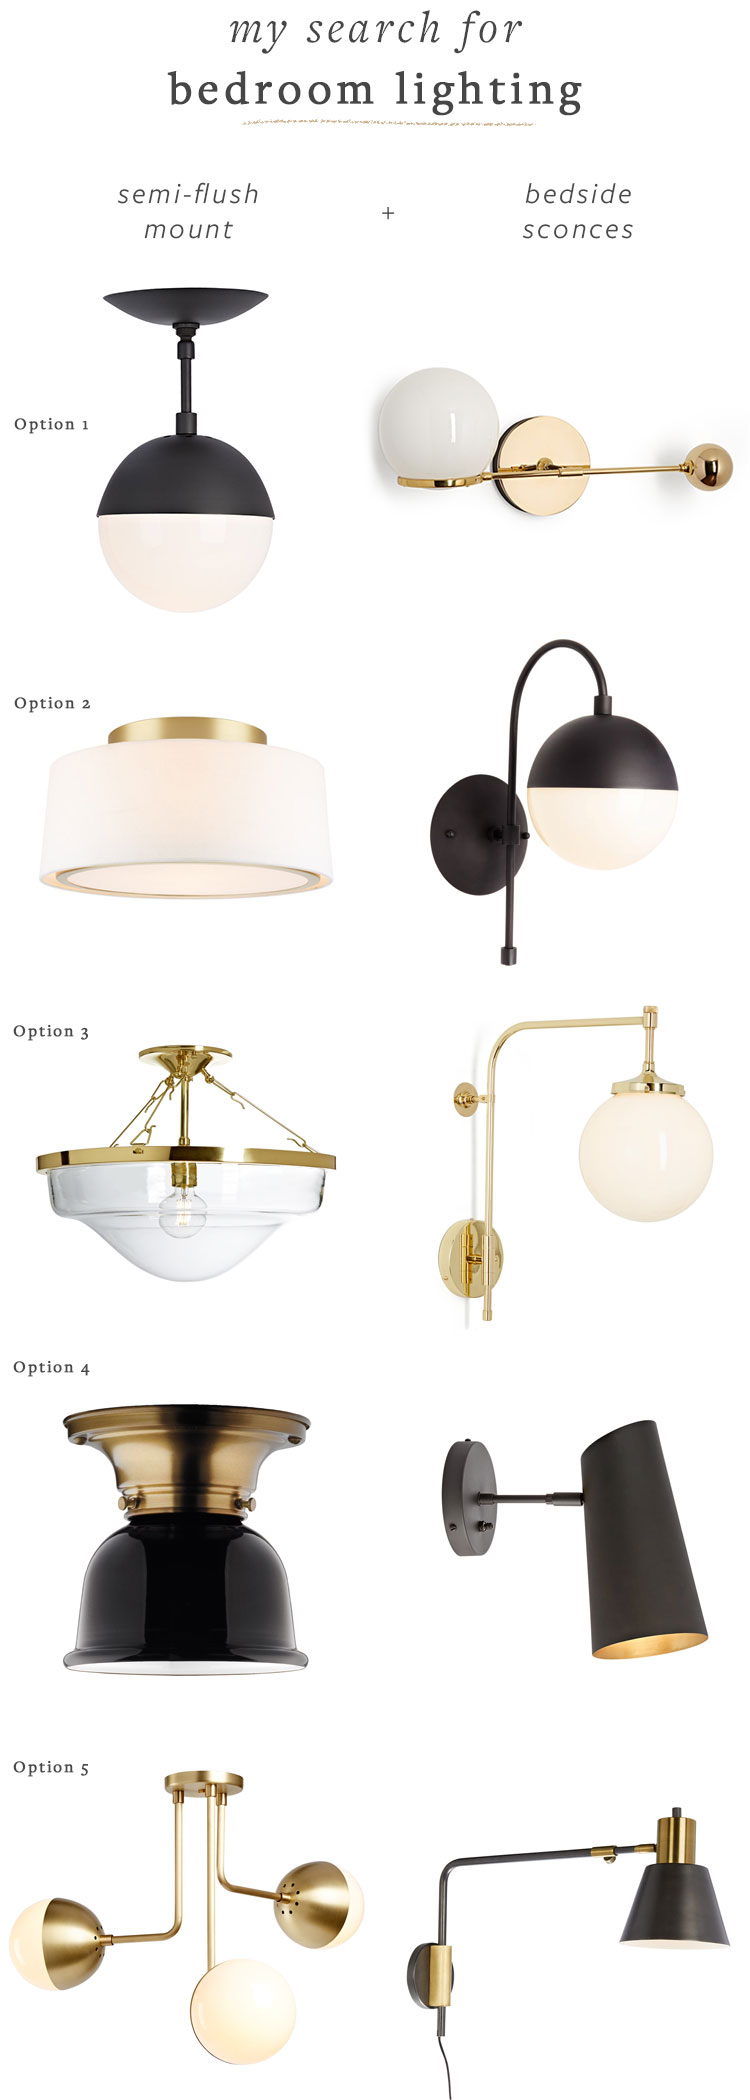 Matte black and brass bedroom lighting fixtures round up. Flush-mount, semi-flush mount, and bedside sconces from @rejuvenationinc for my bedroom renovation makeover. See more on jojotastic.com